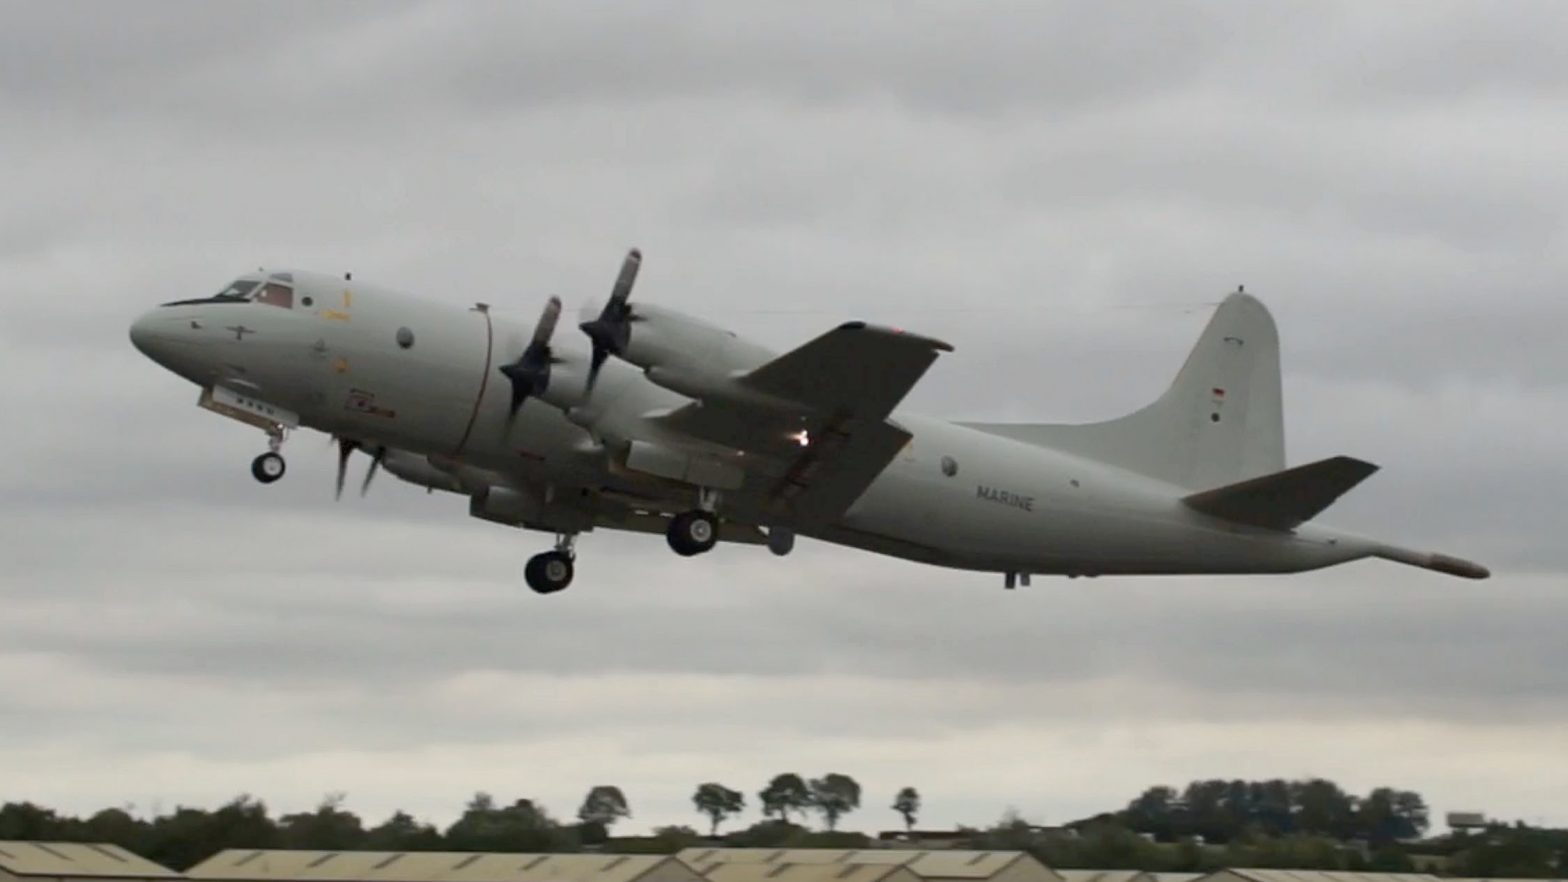 Lockheed Martin has been awarded a contract by US Navy to support the German Navy's P-3C Orion Mission System Refresh Programme